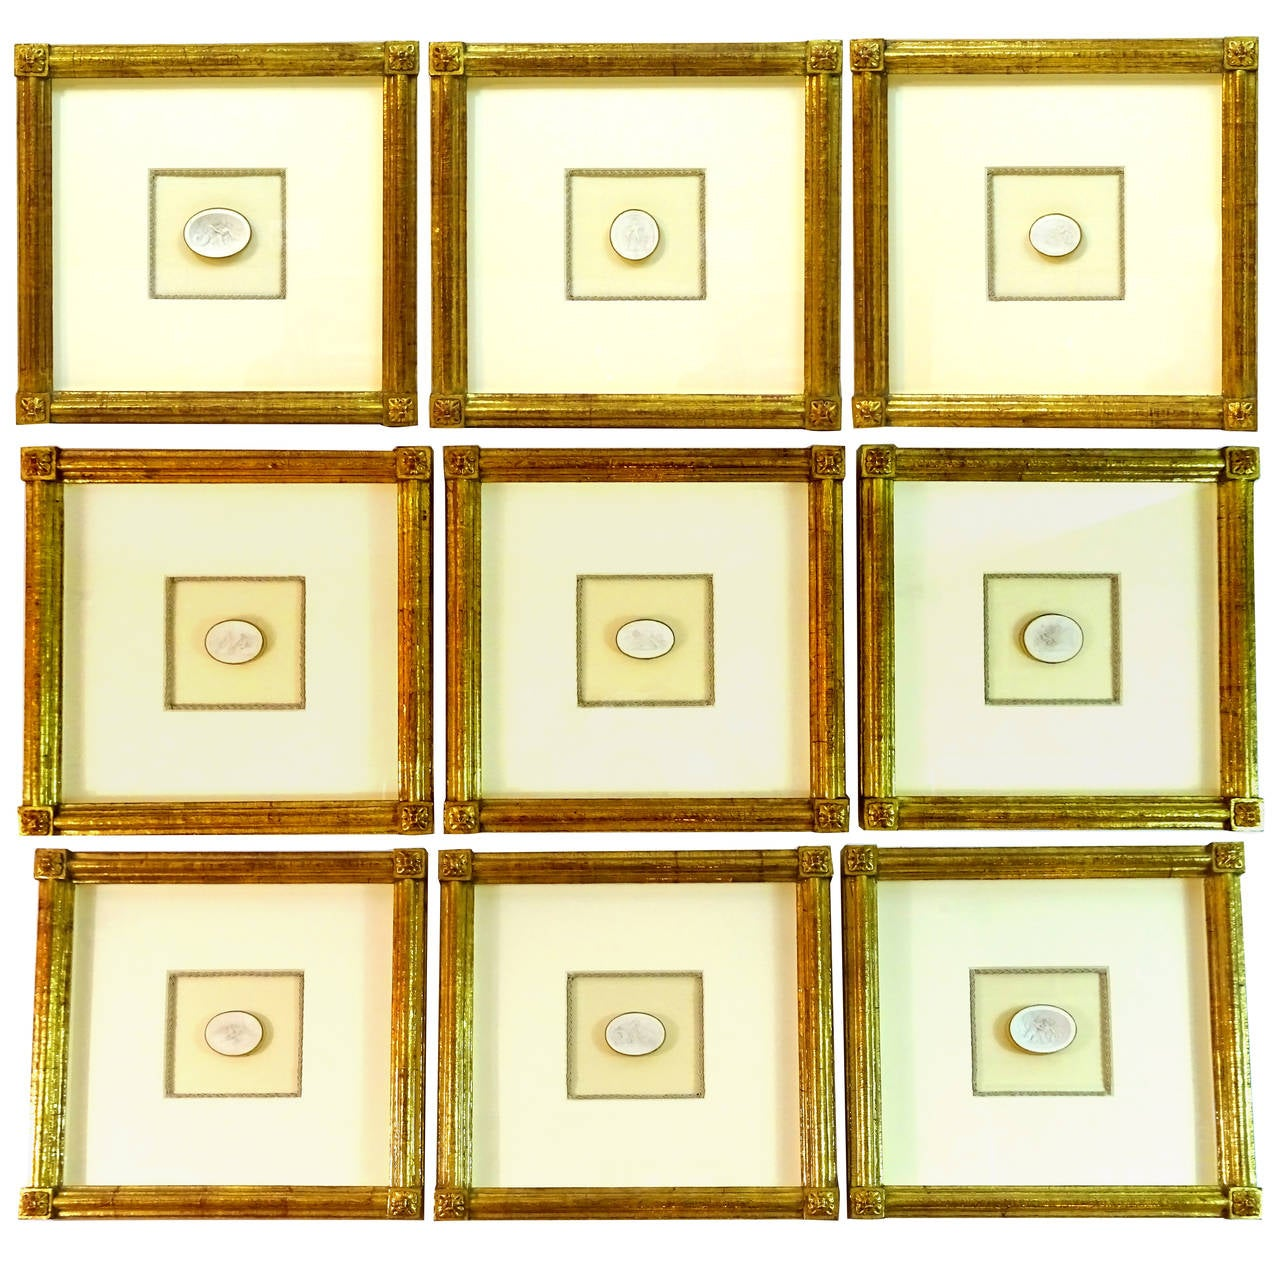 east and orient company collection of nine museum quality framed intaglios